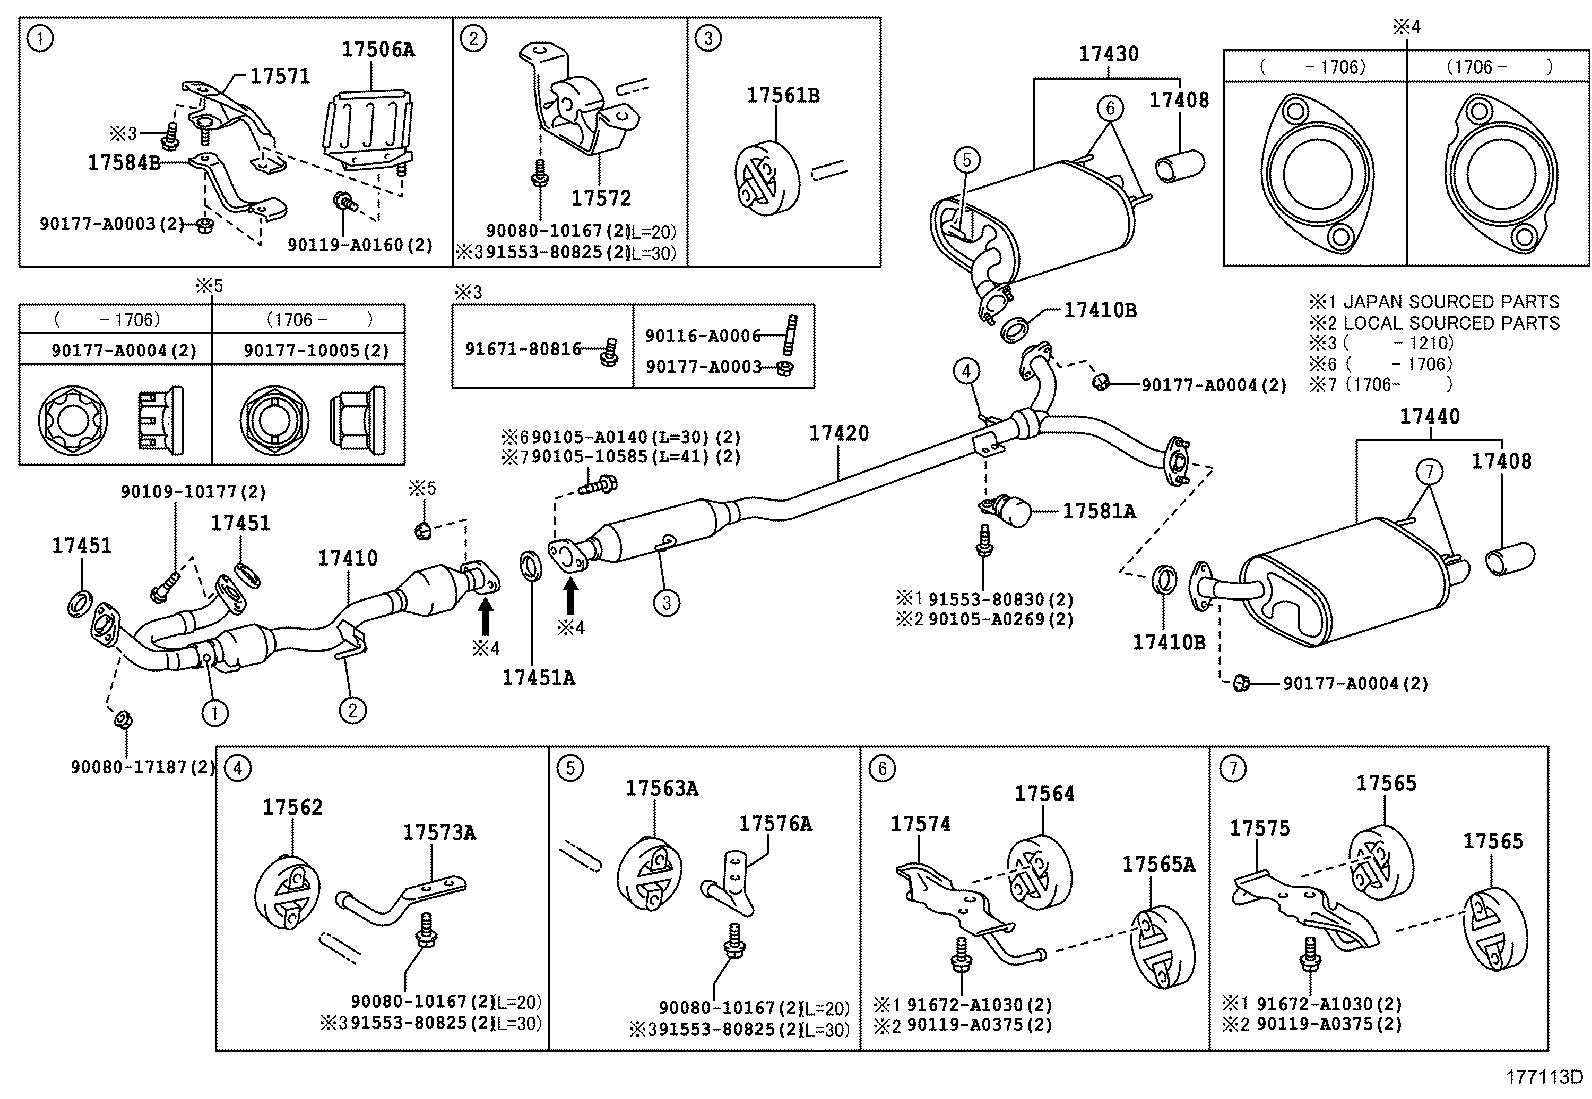 2001 Toyota Camry Exhaust Diagram 2009 Toyota Camry Parts Oem Toyota